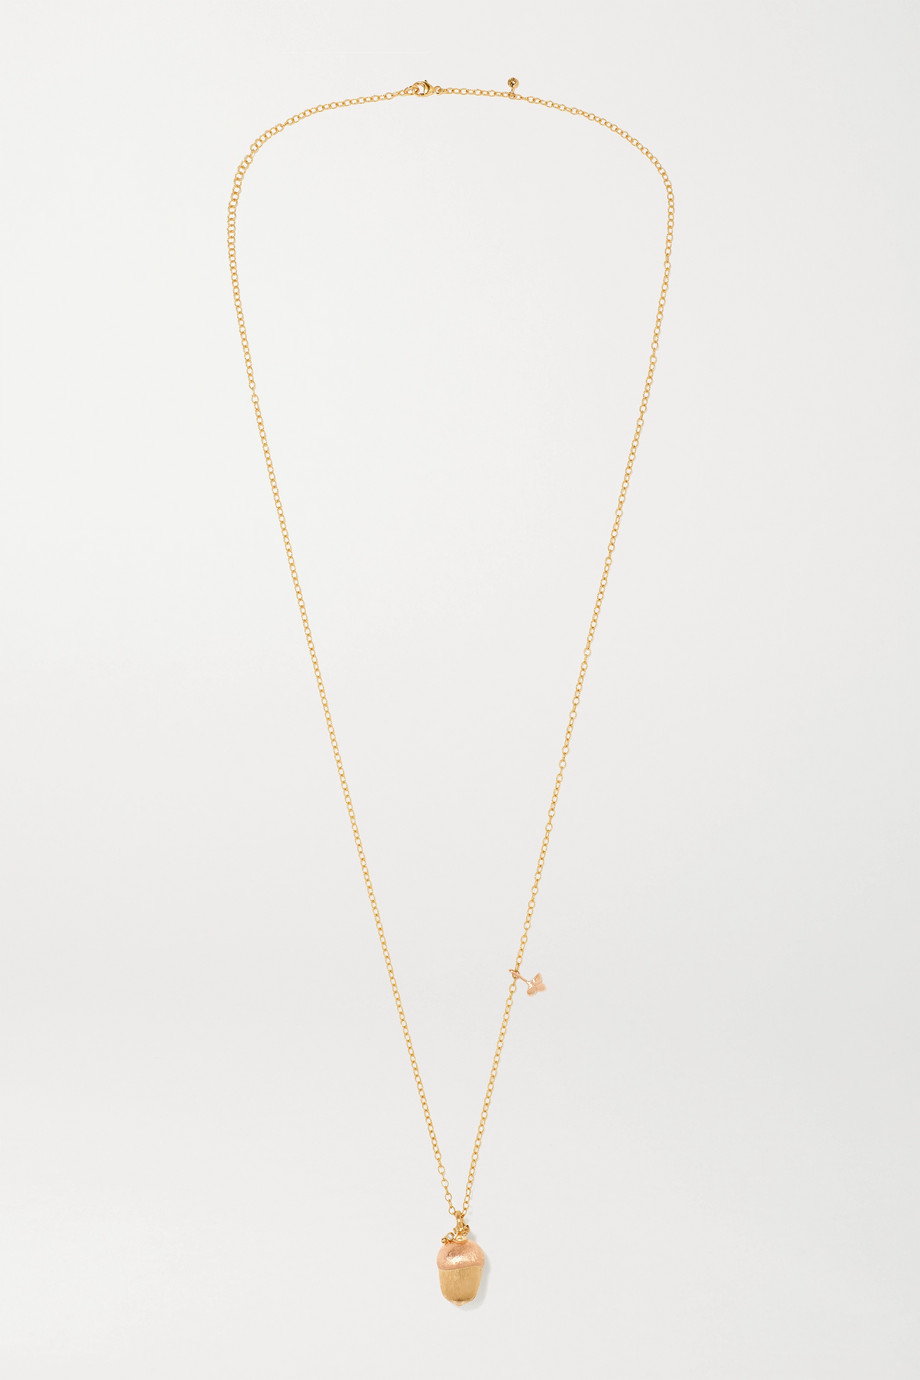 OLE LYNGGAARD COPENHAGEN Forest 18-karat yellow and rose gold diamond necklace